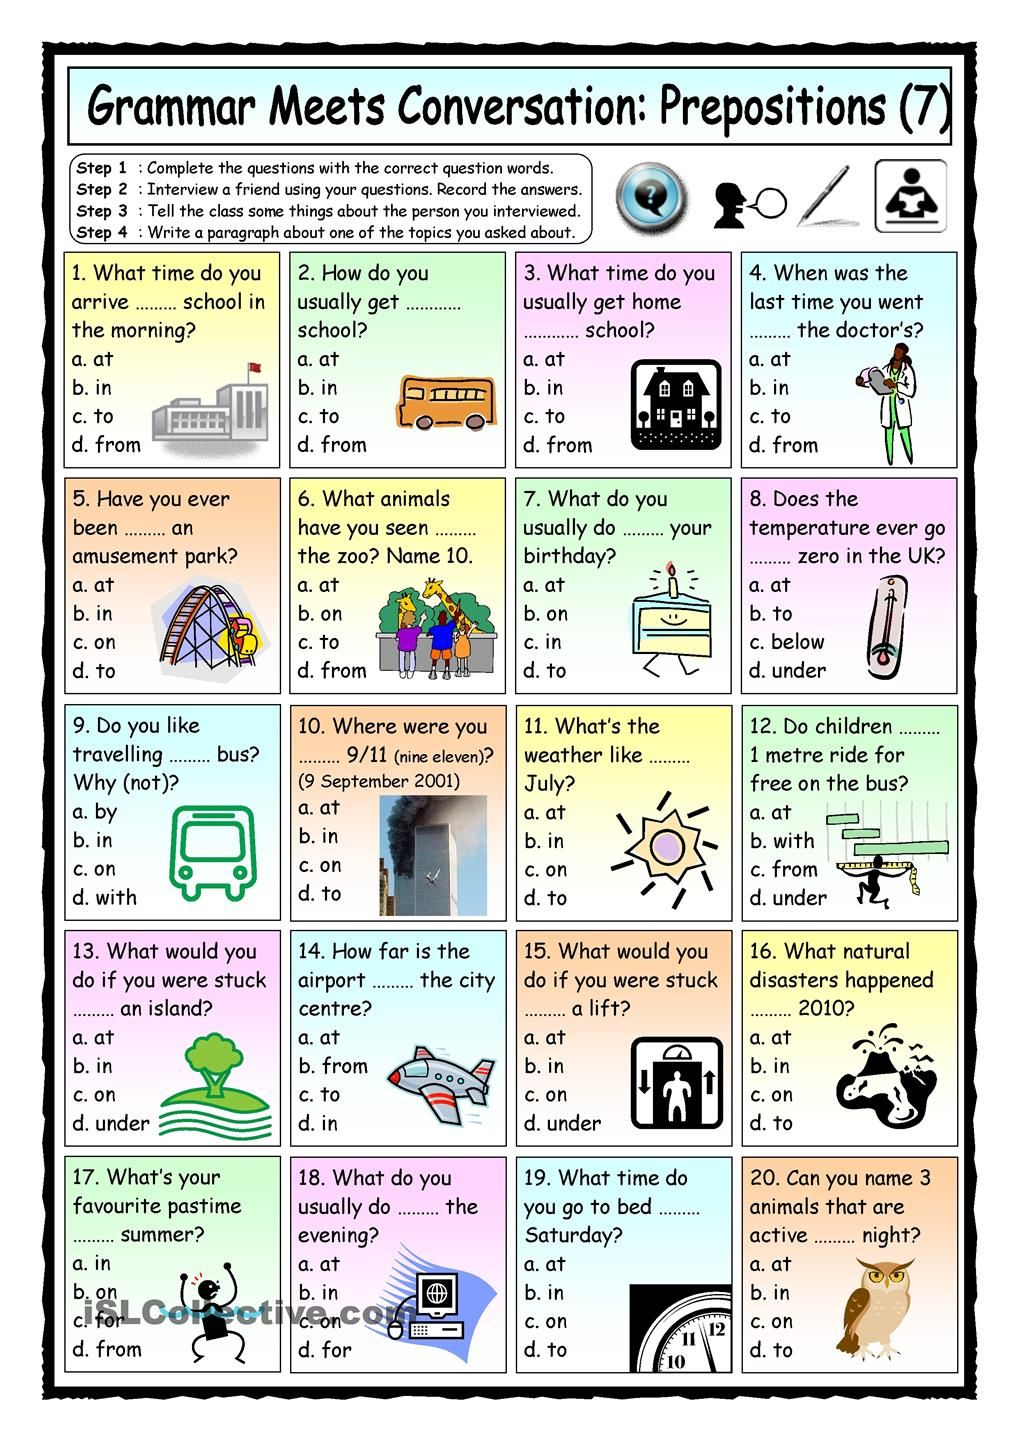 hight resolution of Grammar Meets Conversation: Prepositions (7) - Asking Questions   Learn  english